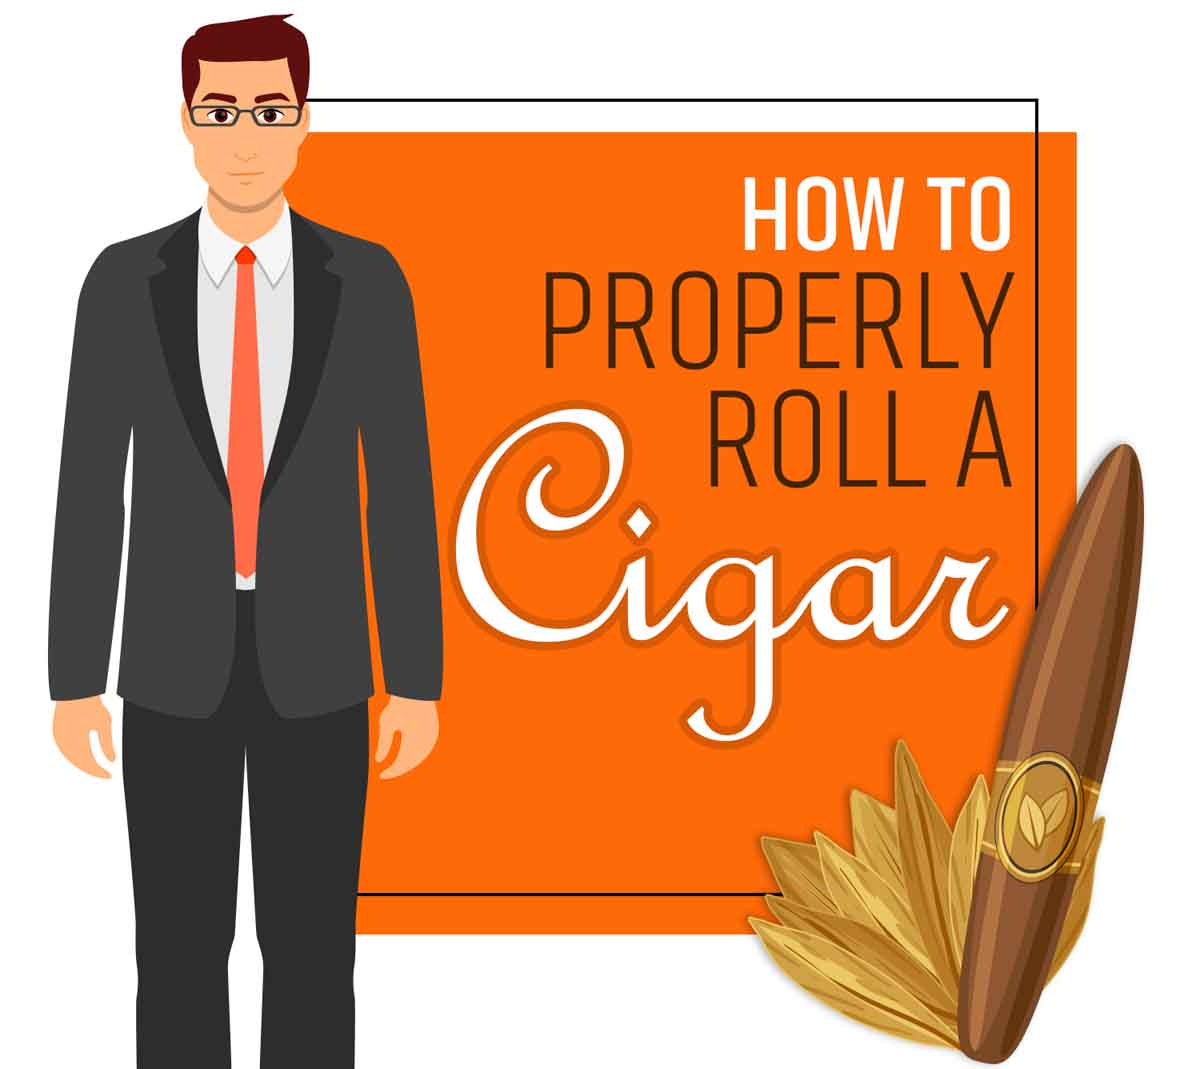 How to Properly Roll a Cigar